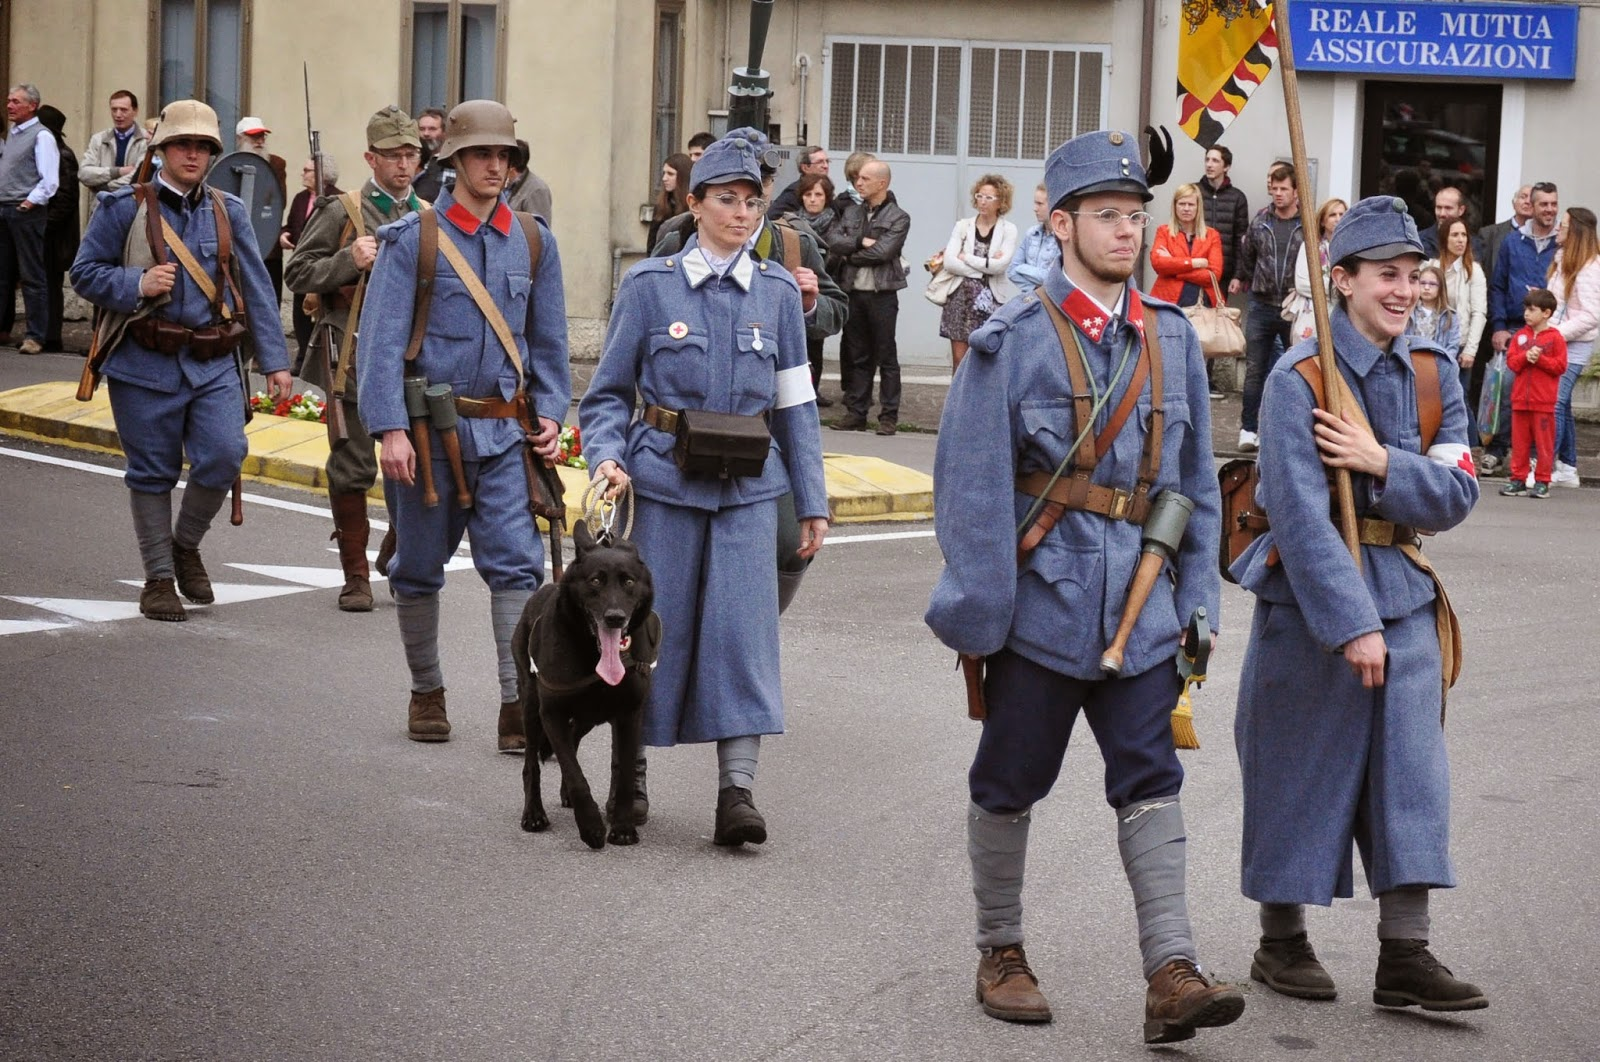 Soldiers at the Parade, Donkey Race, Romano d'Ezzelino, Veneto, Italy